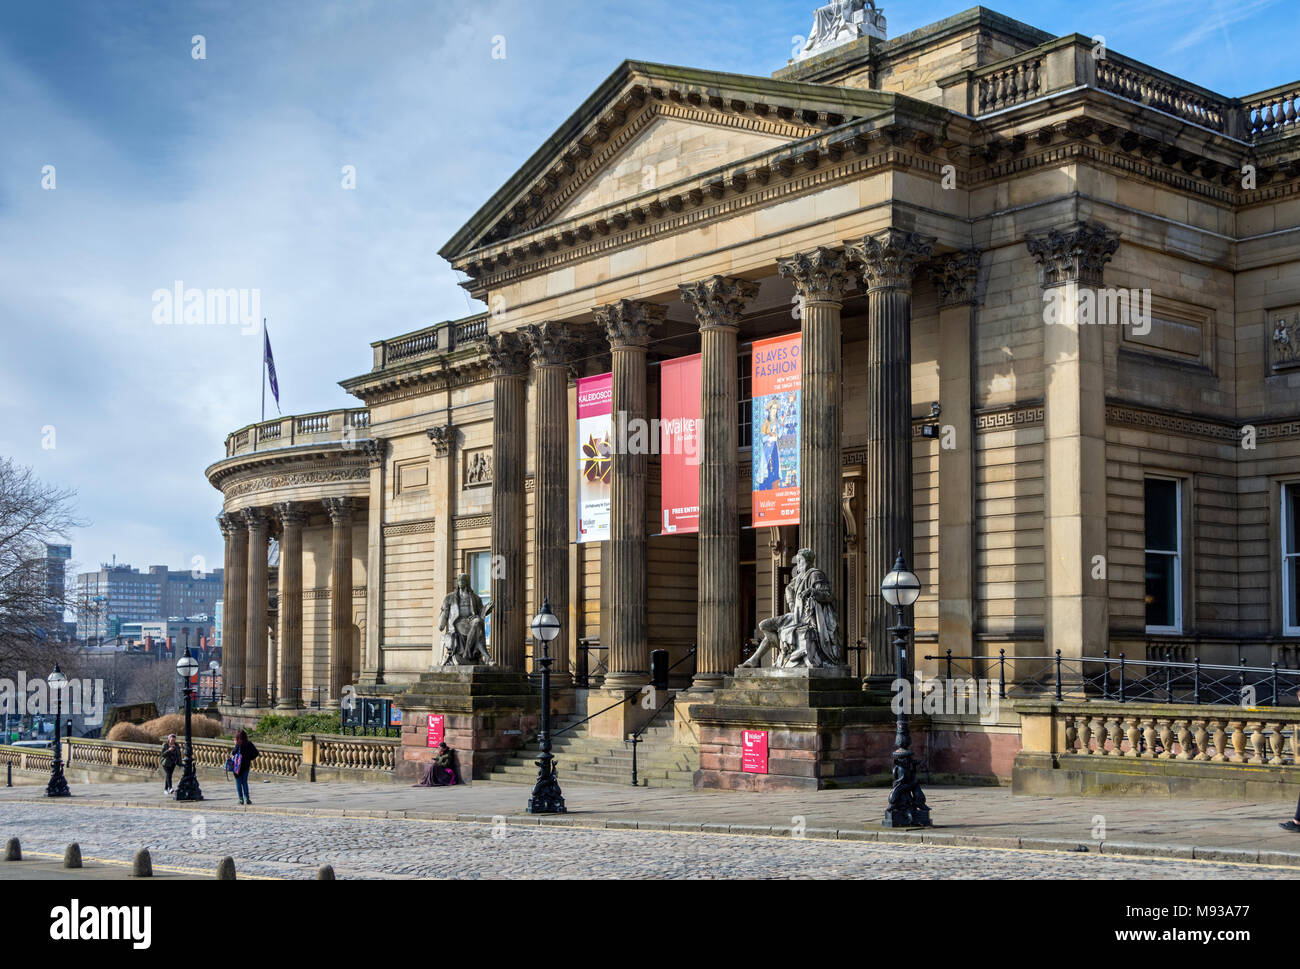 The Walker Art Gallery.   By Cornelius Sherlock and H. H. Vale, 1877.  William Brown Street, Liverpool, England, UK - Stock Image